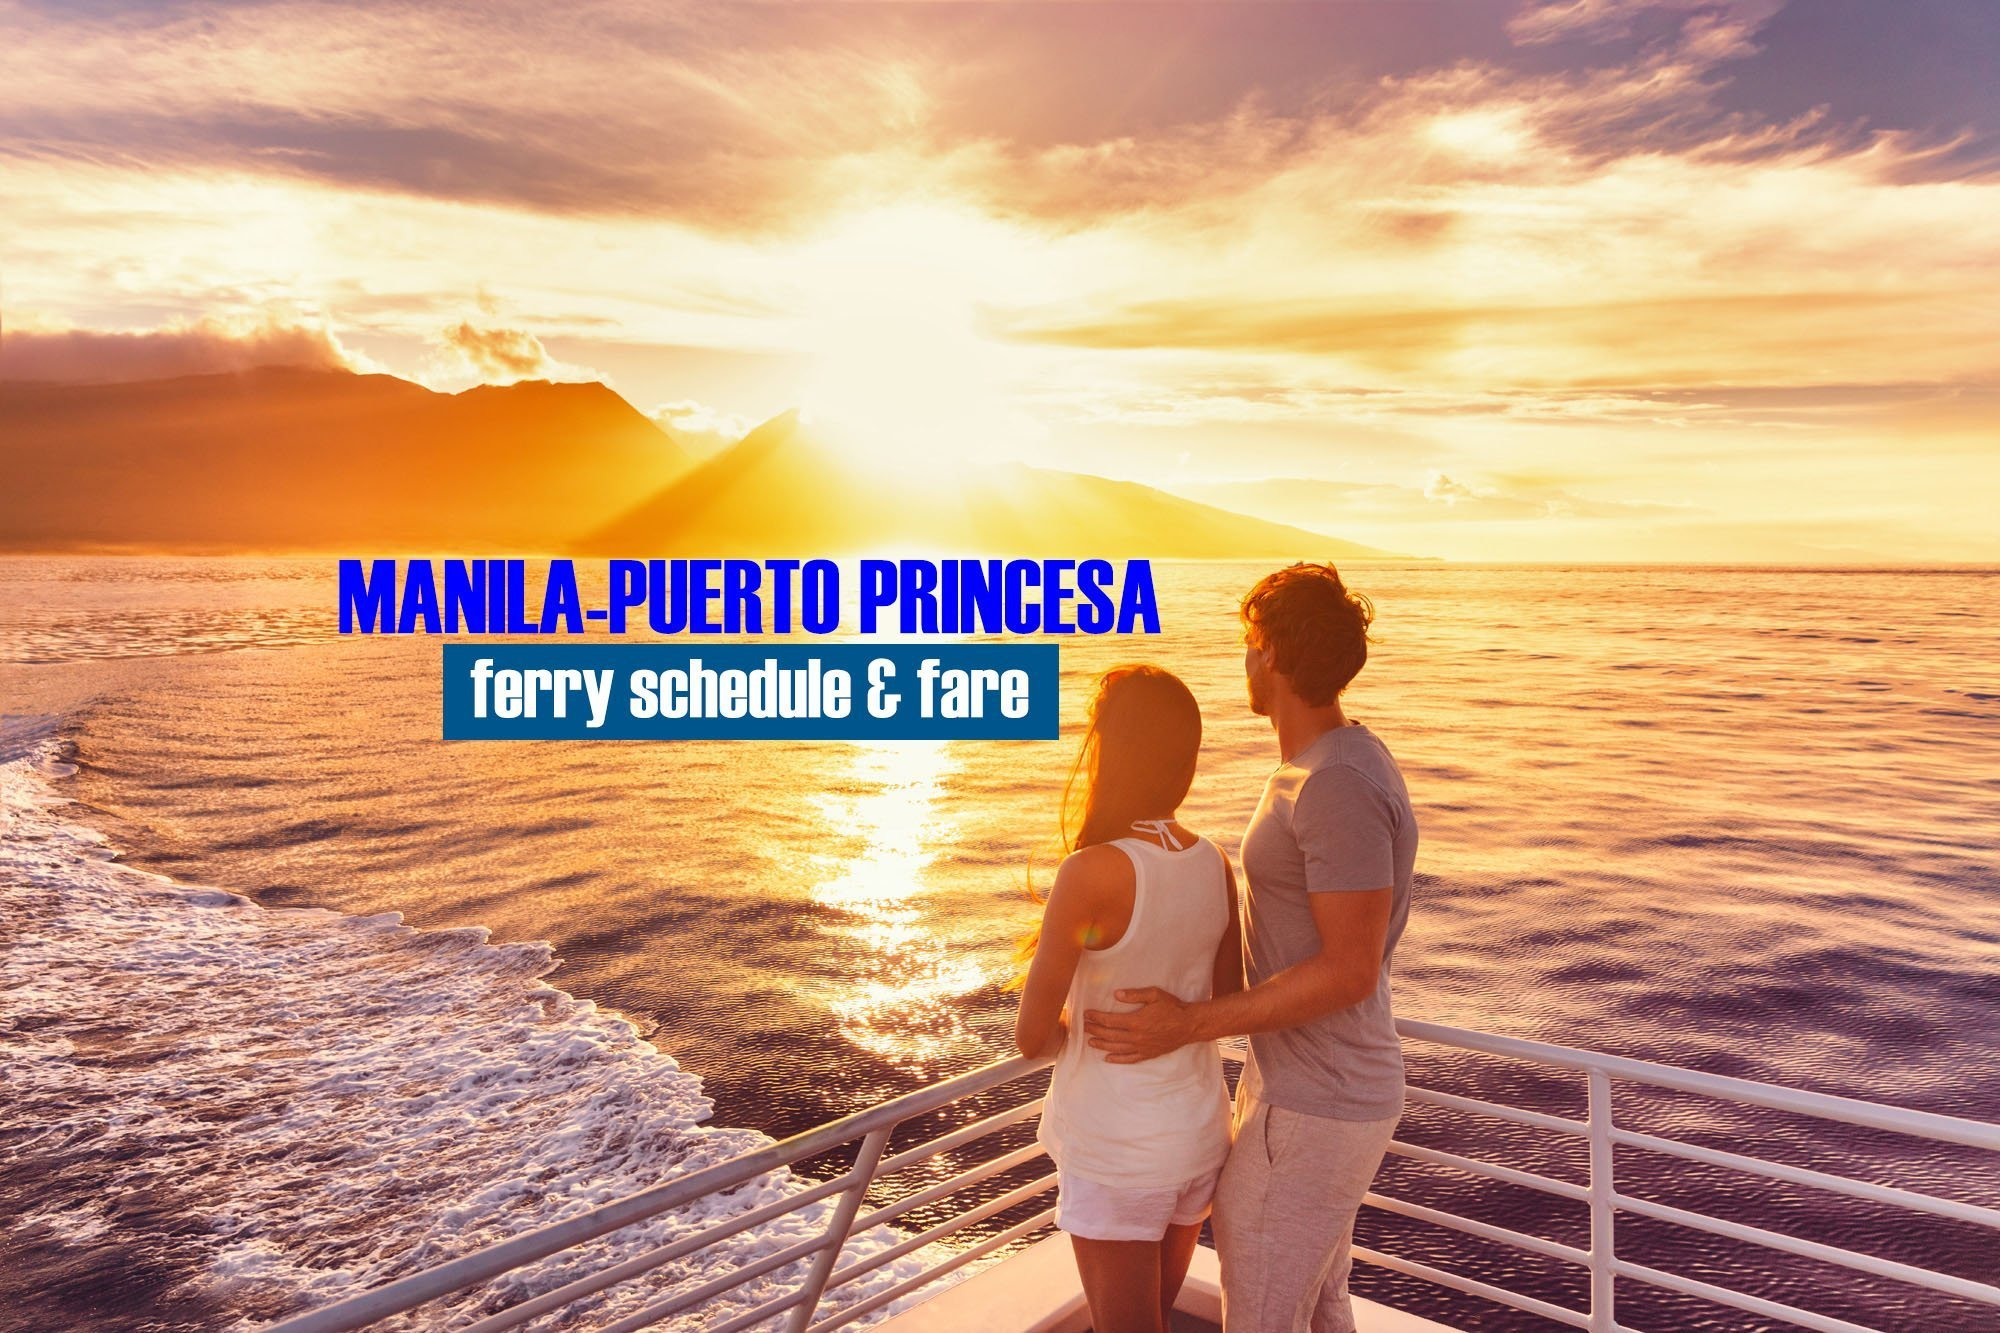 Manila to Puerto Princesa: 2020 Ferry Schedule & Fare